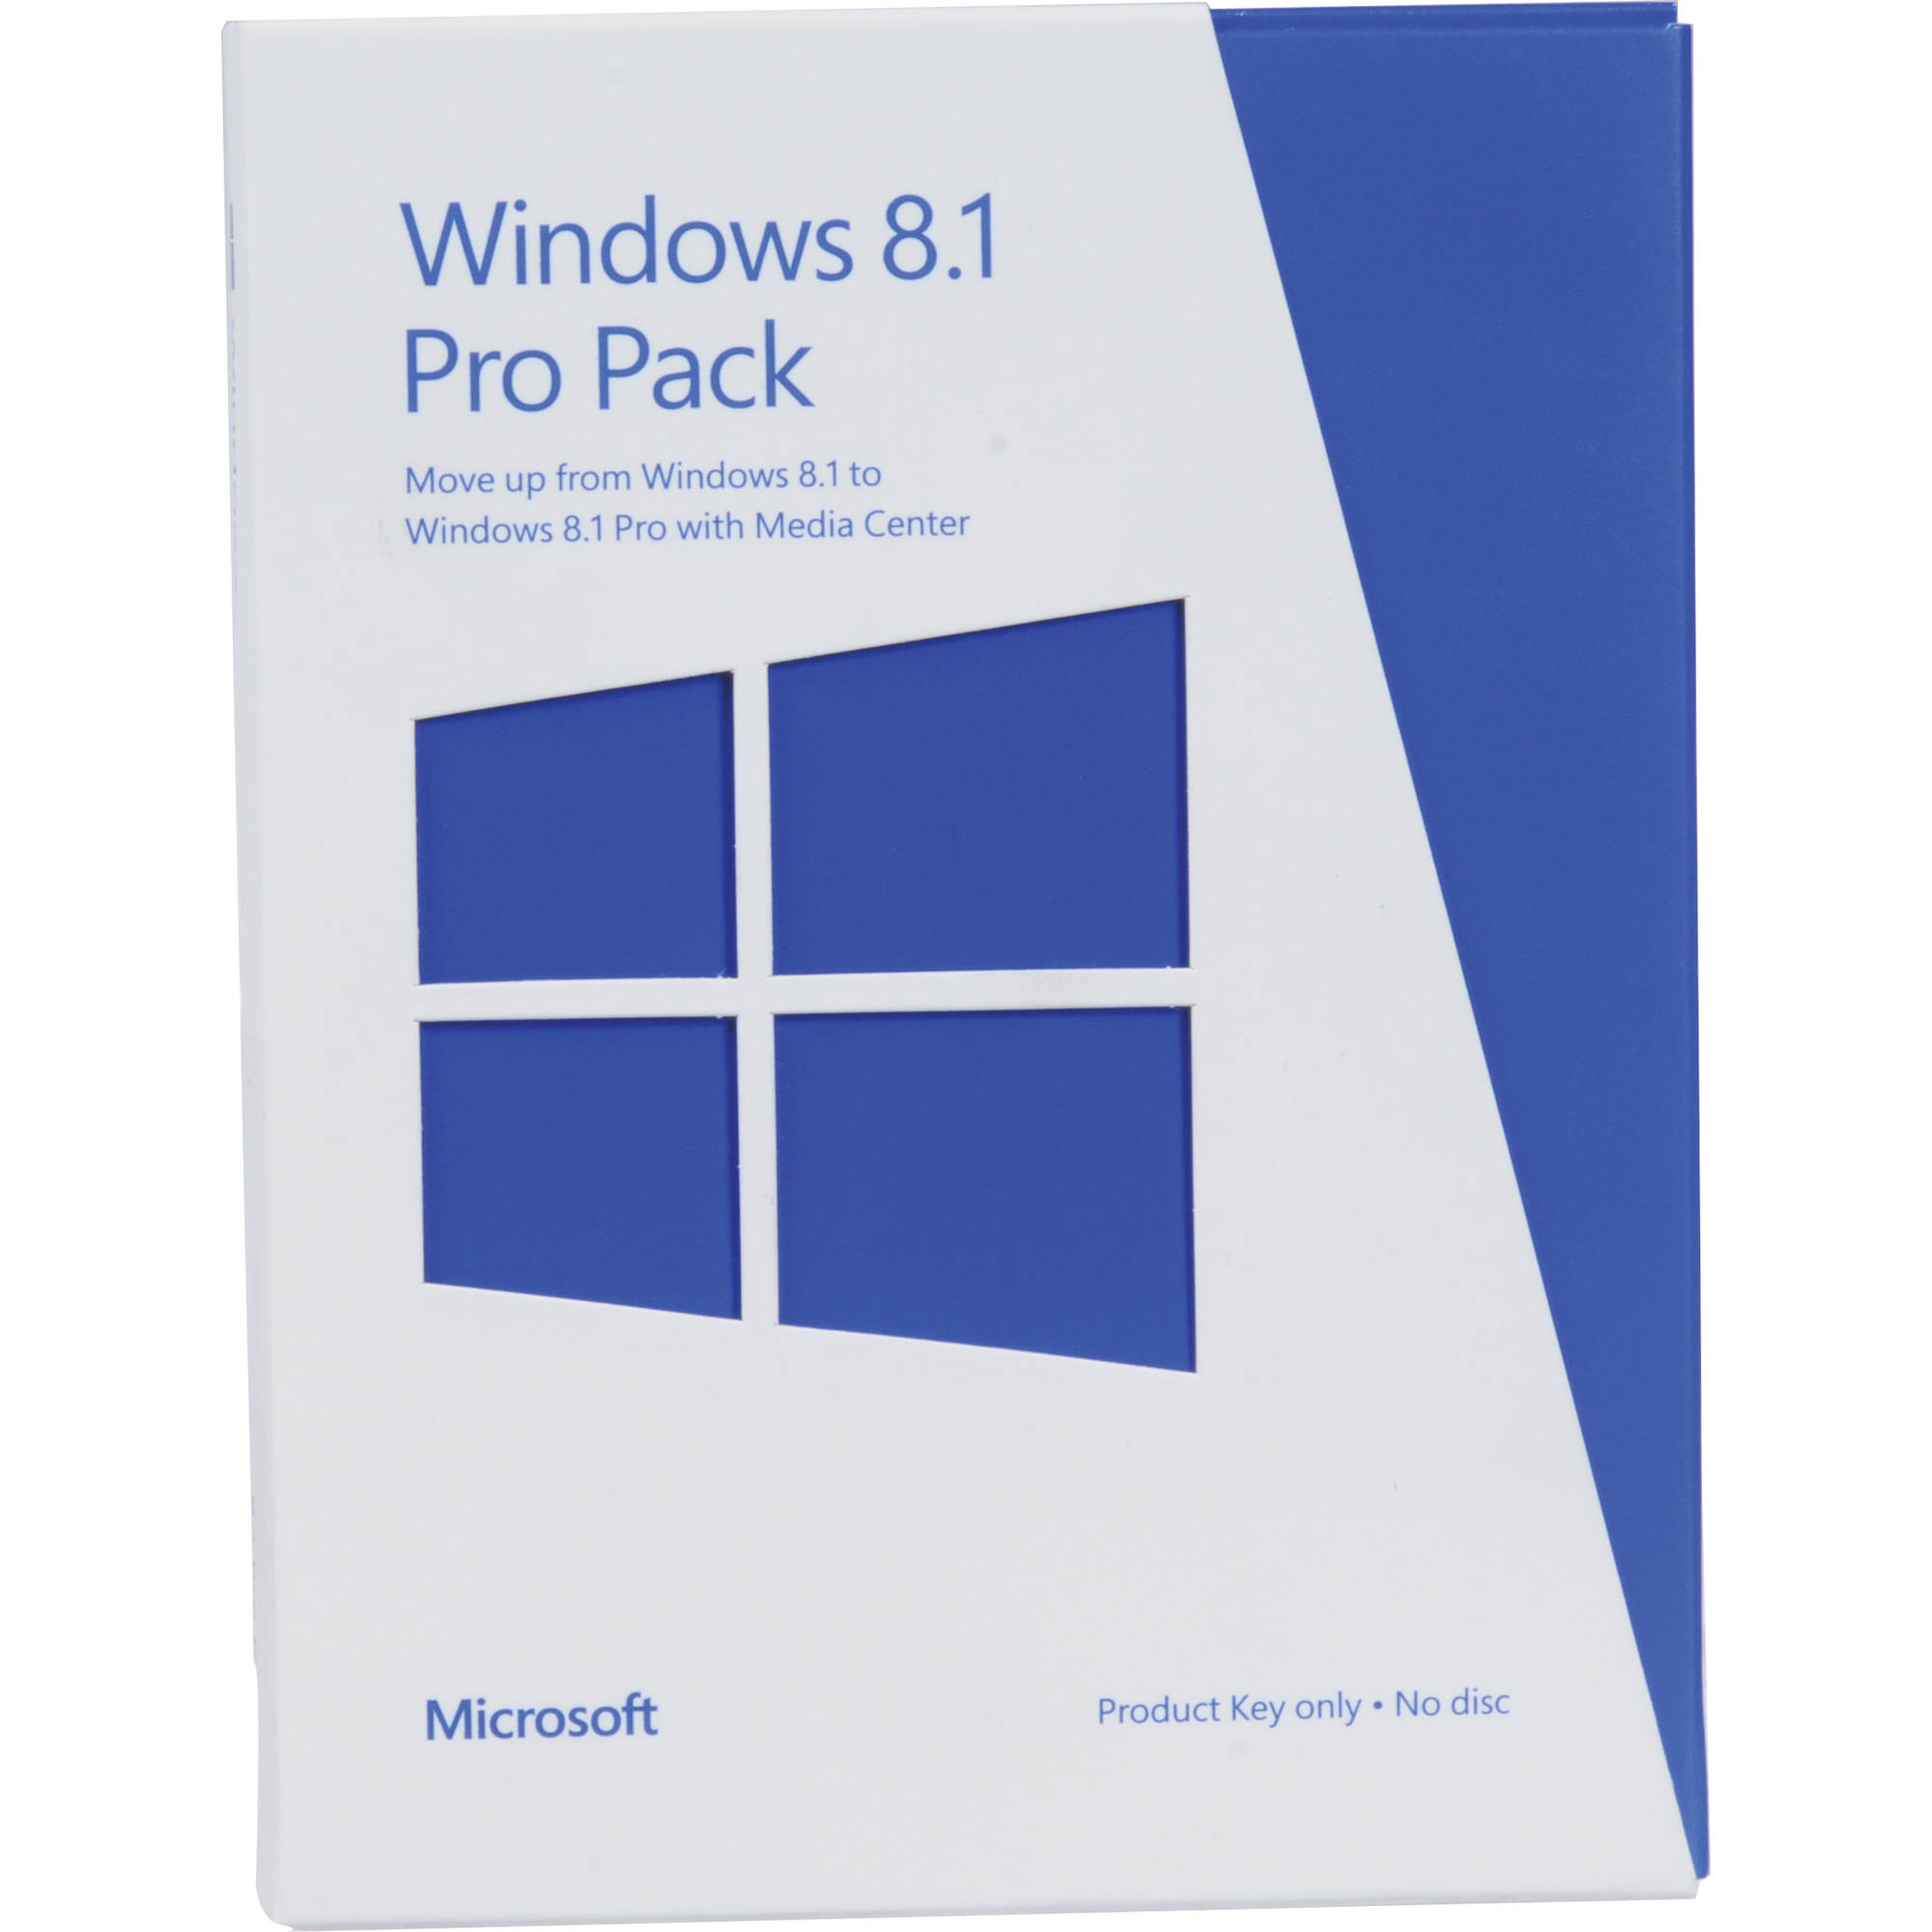 windows 8.1 pro with media center product key list